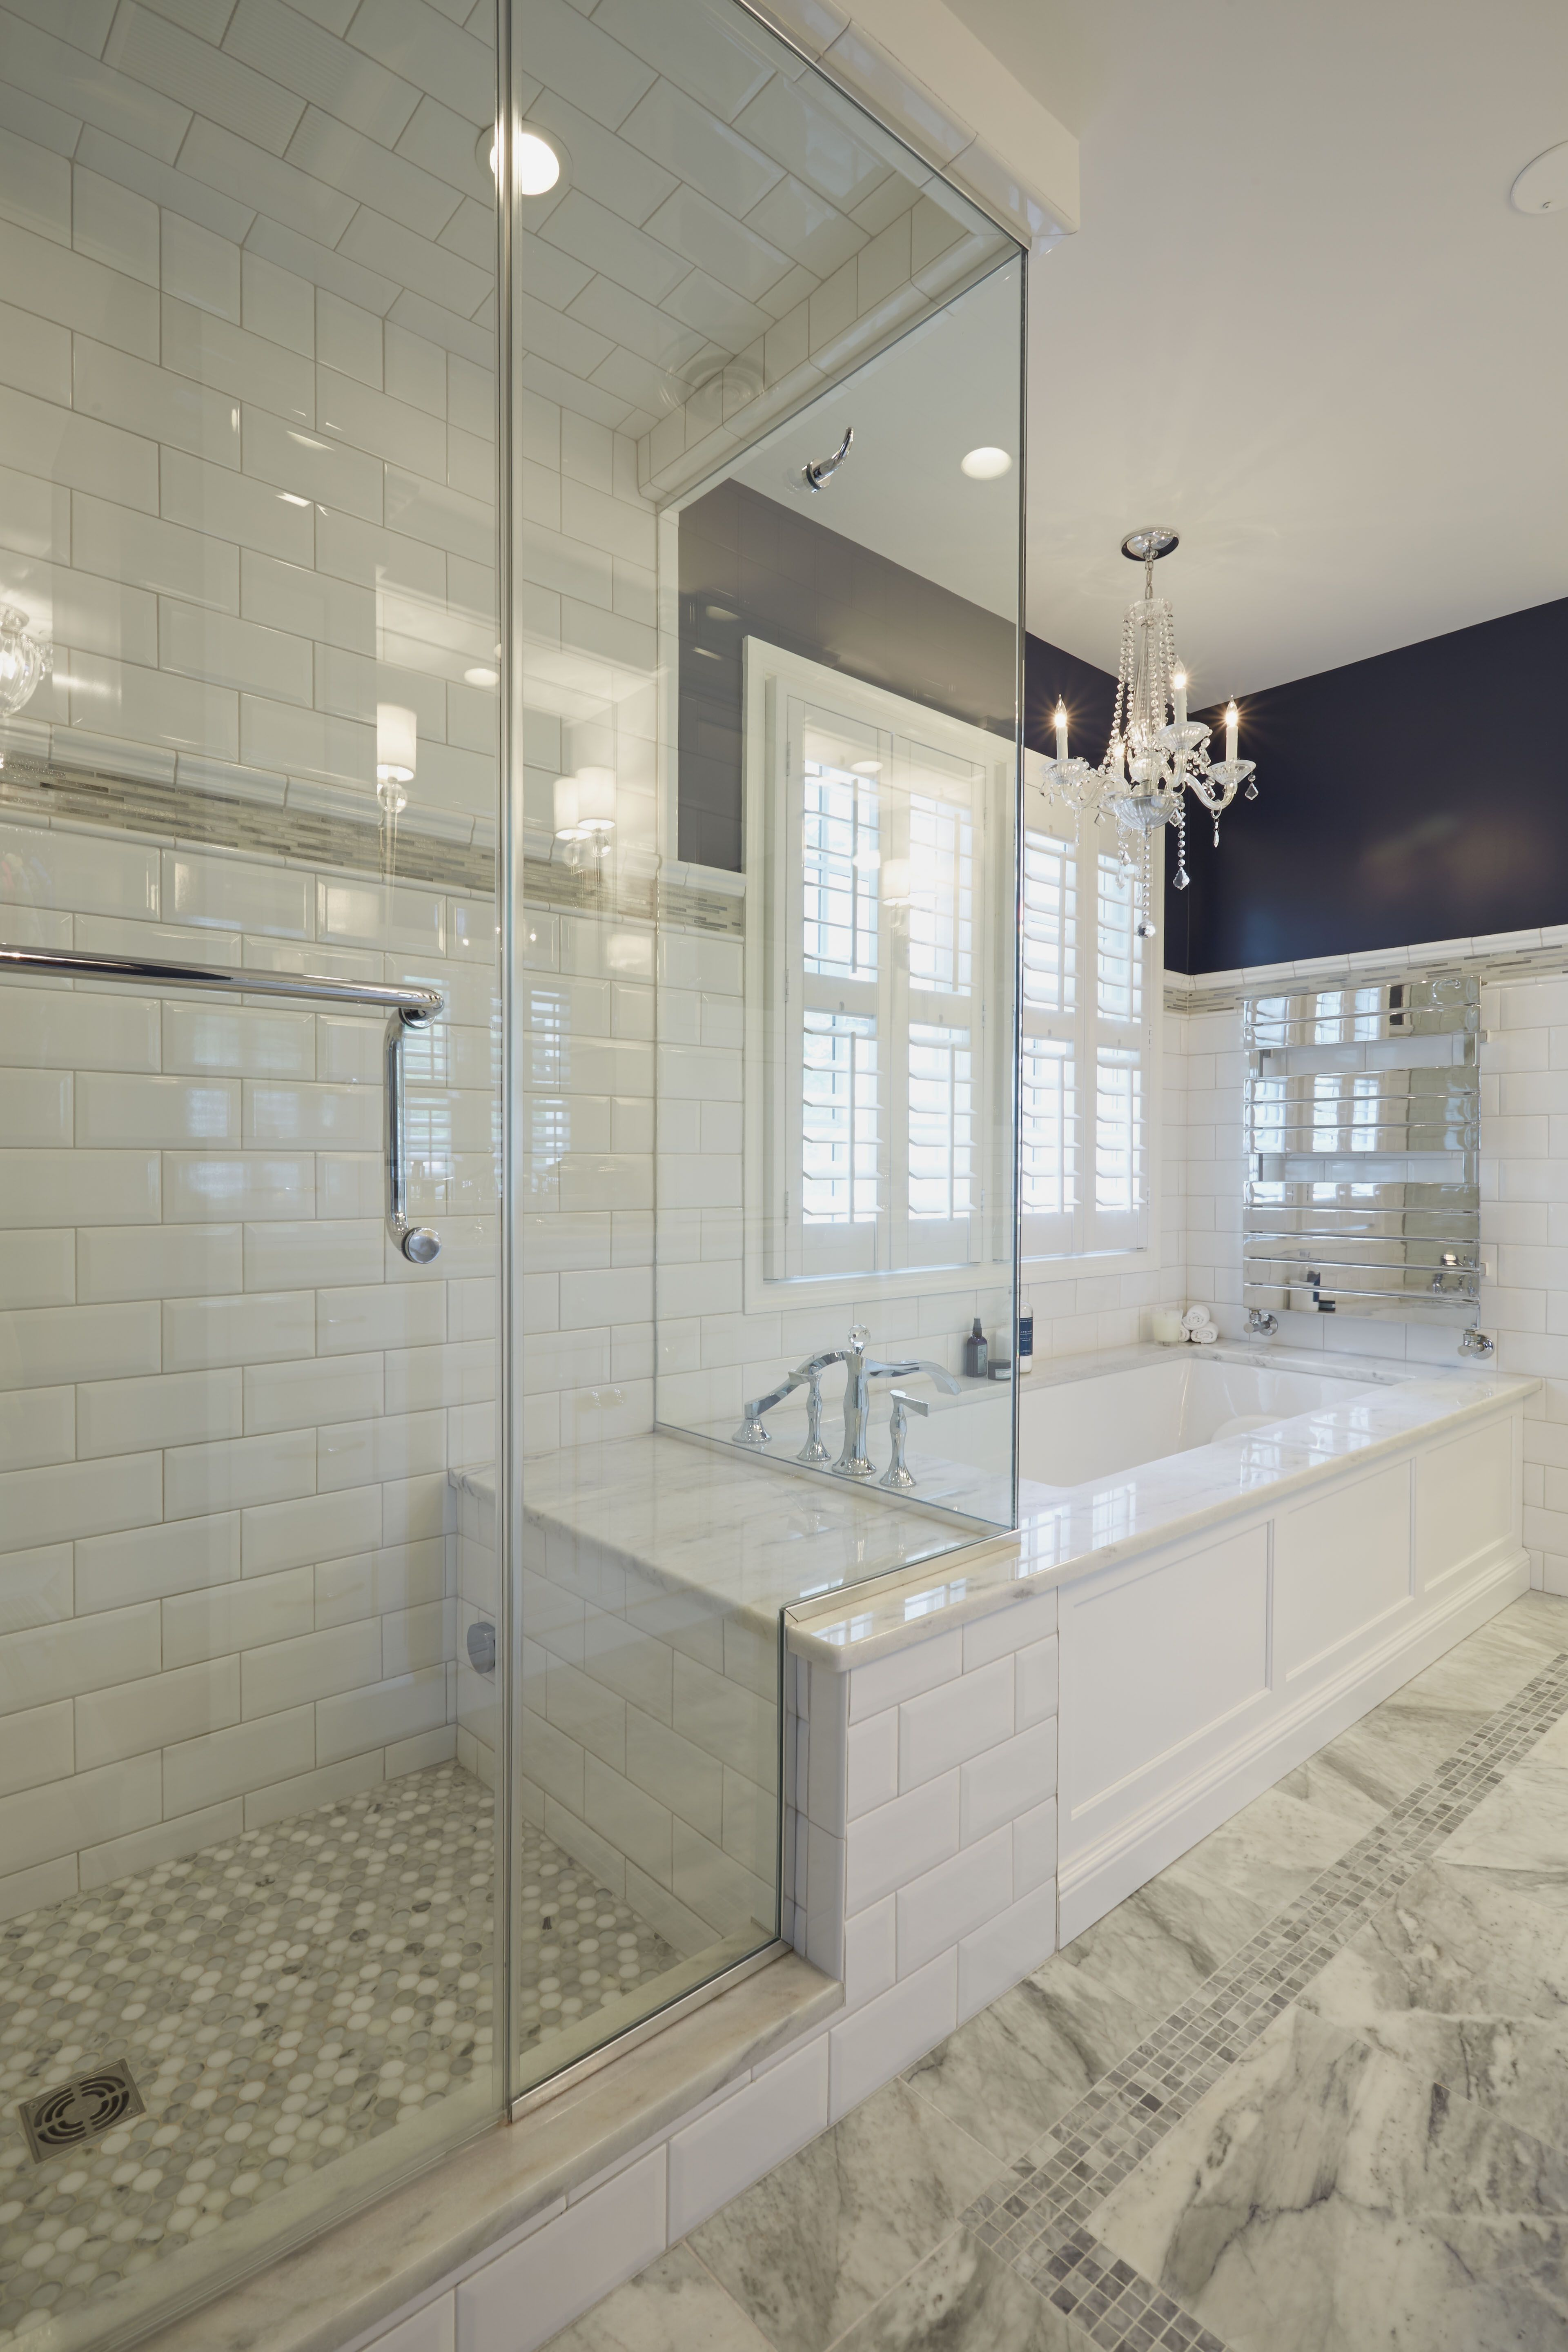 Glass Enclosed Shower depiction of benefits of glass enclosed showers | bathroom design